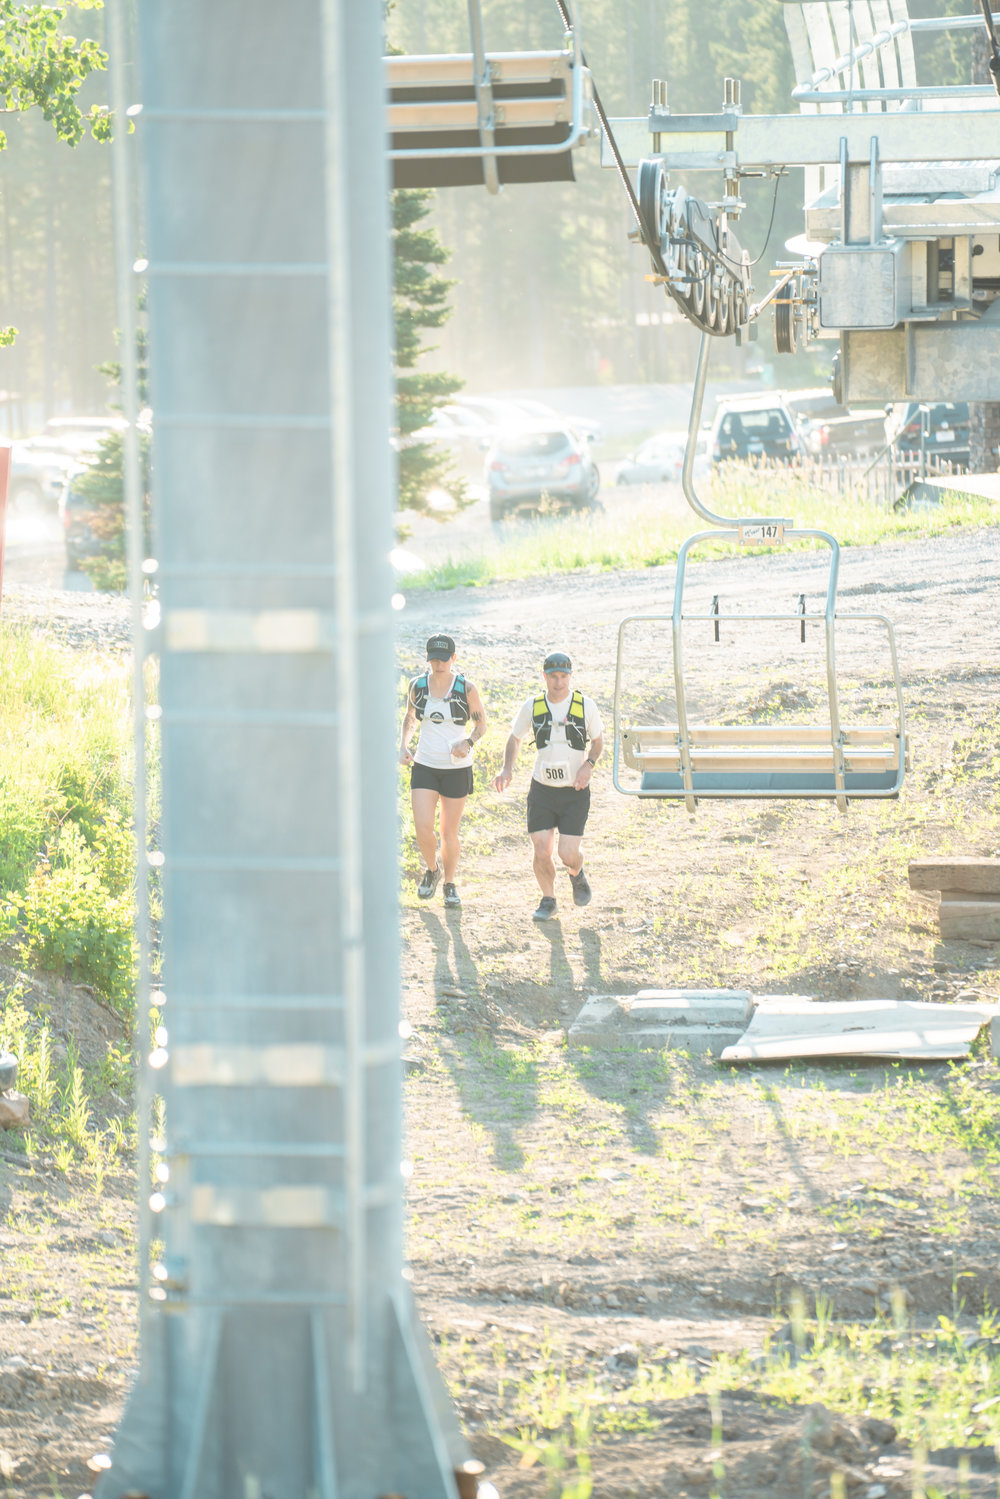 Runners warm up for Bozeman Running Co. racing of Crosscuts at Bridger Bowl just north of Bozeman, Montana.